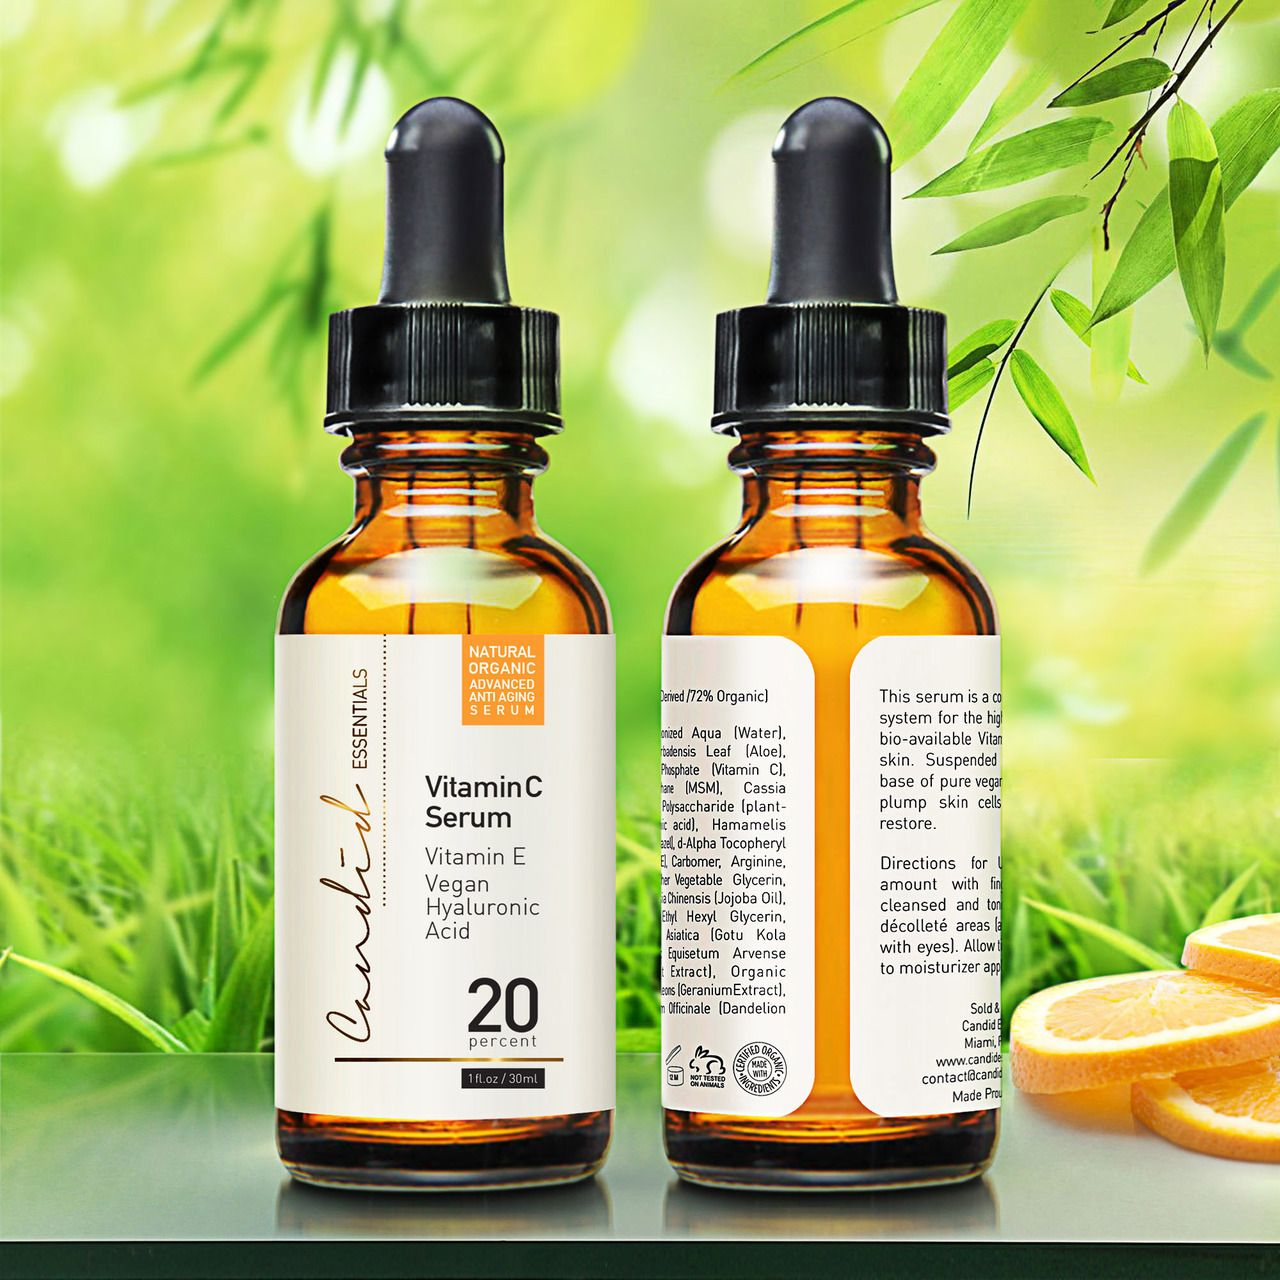 20 Vitamin C Serum (With images) Simple skincare